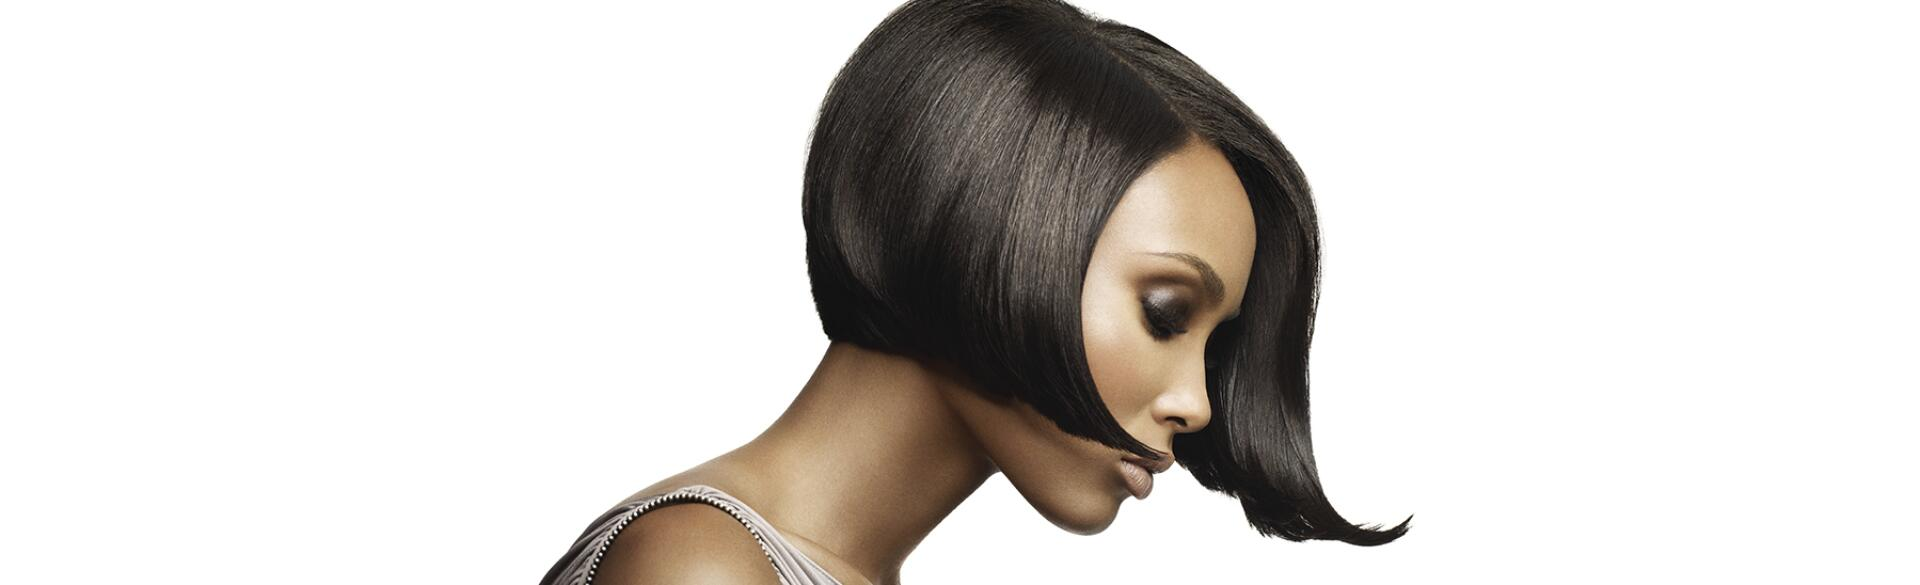 beautiful black woman seen from the side wearing a short-bobbed wig